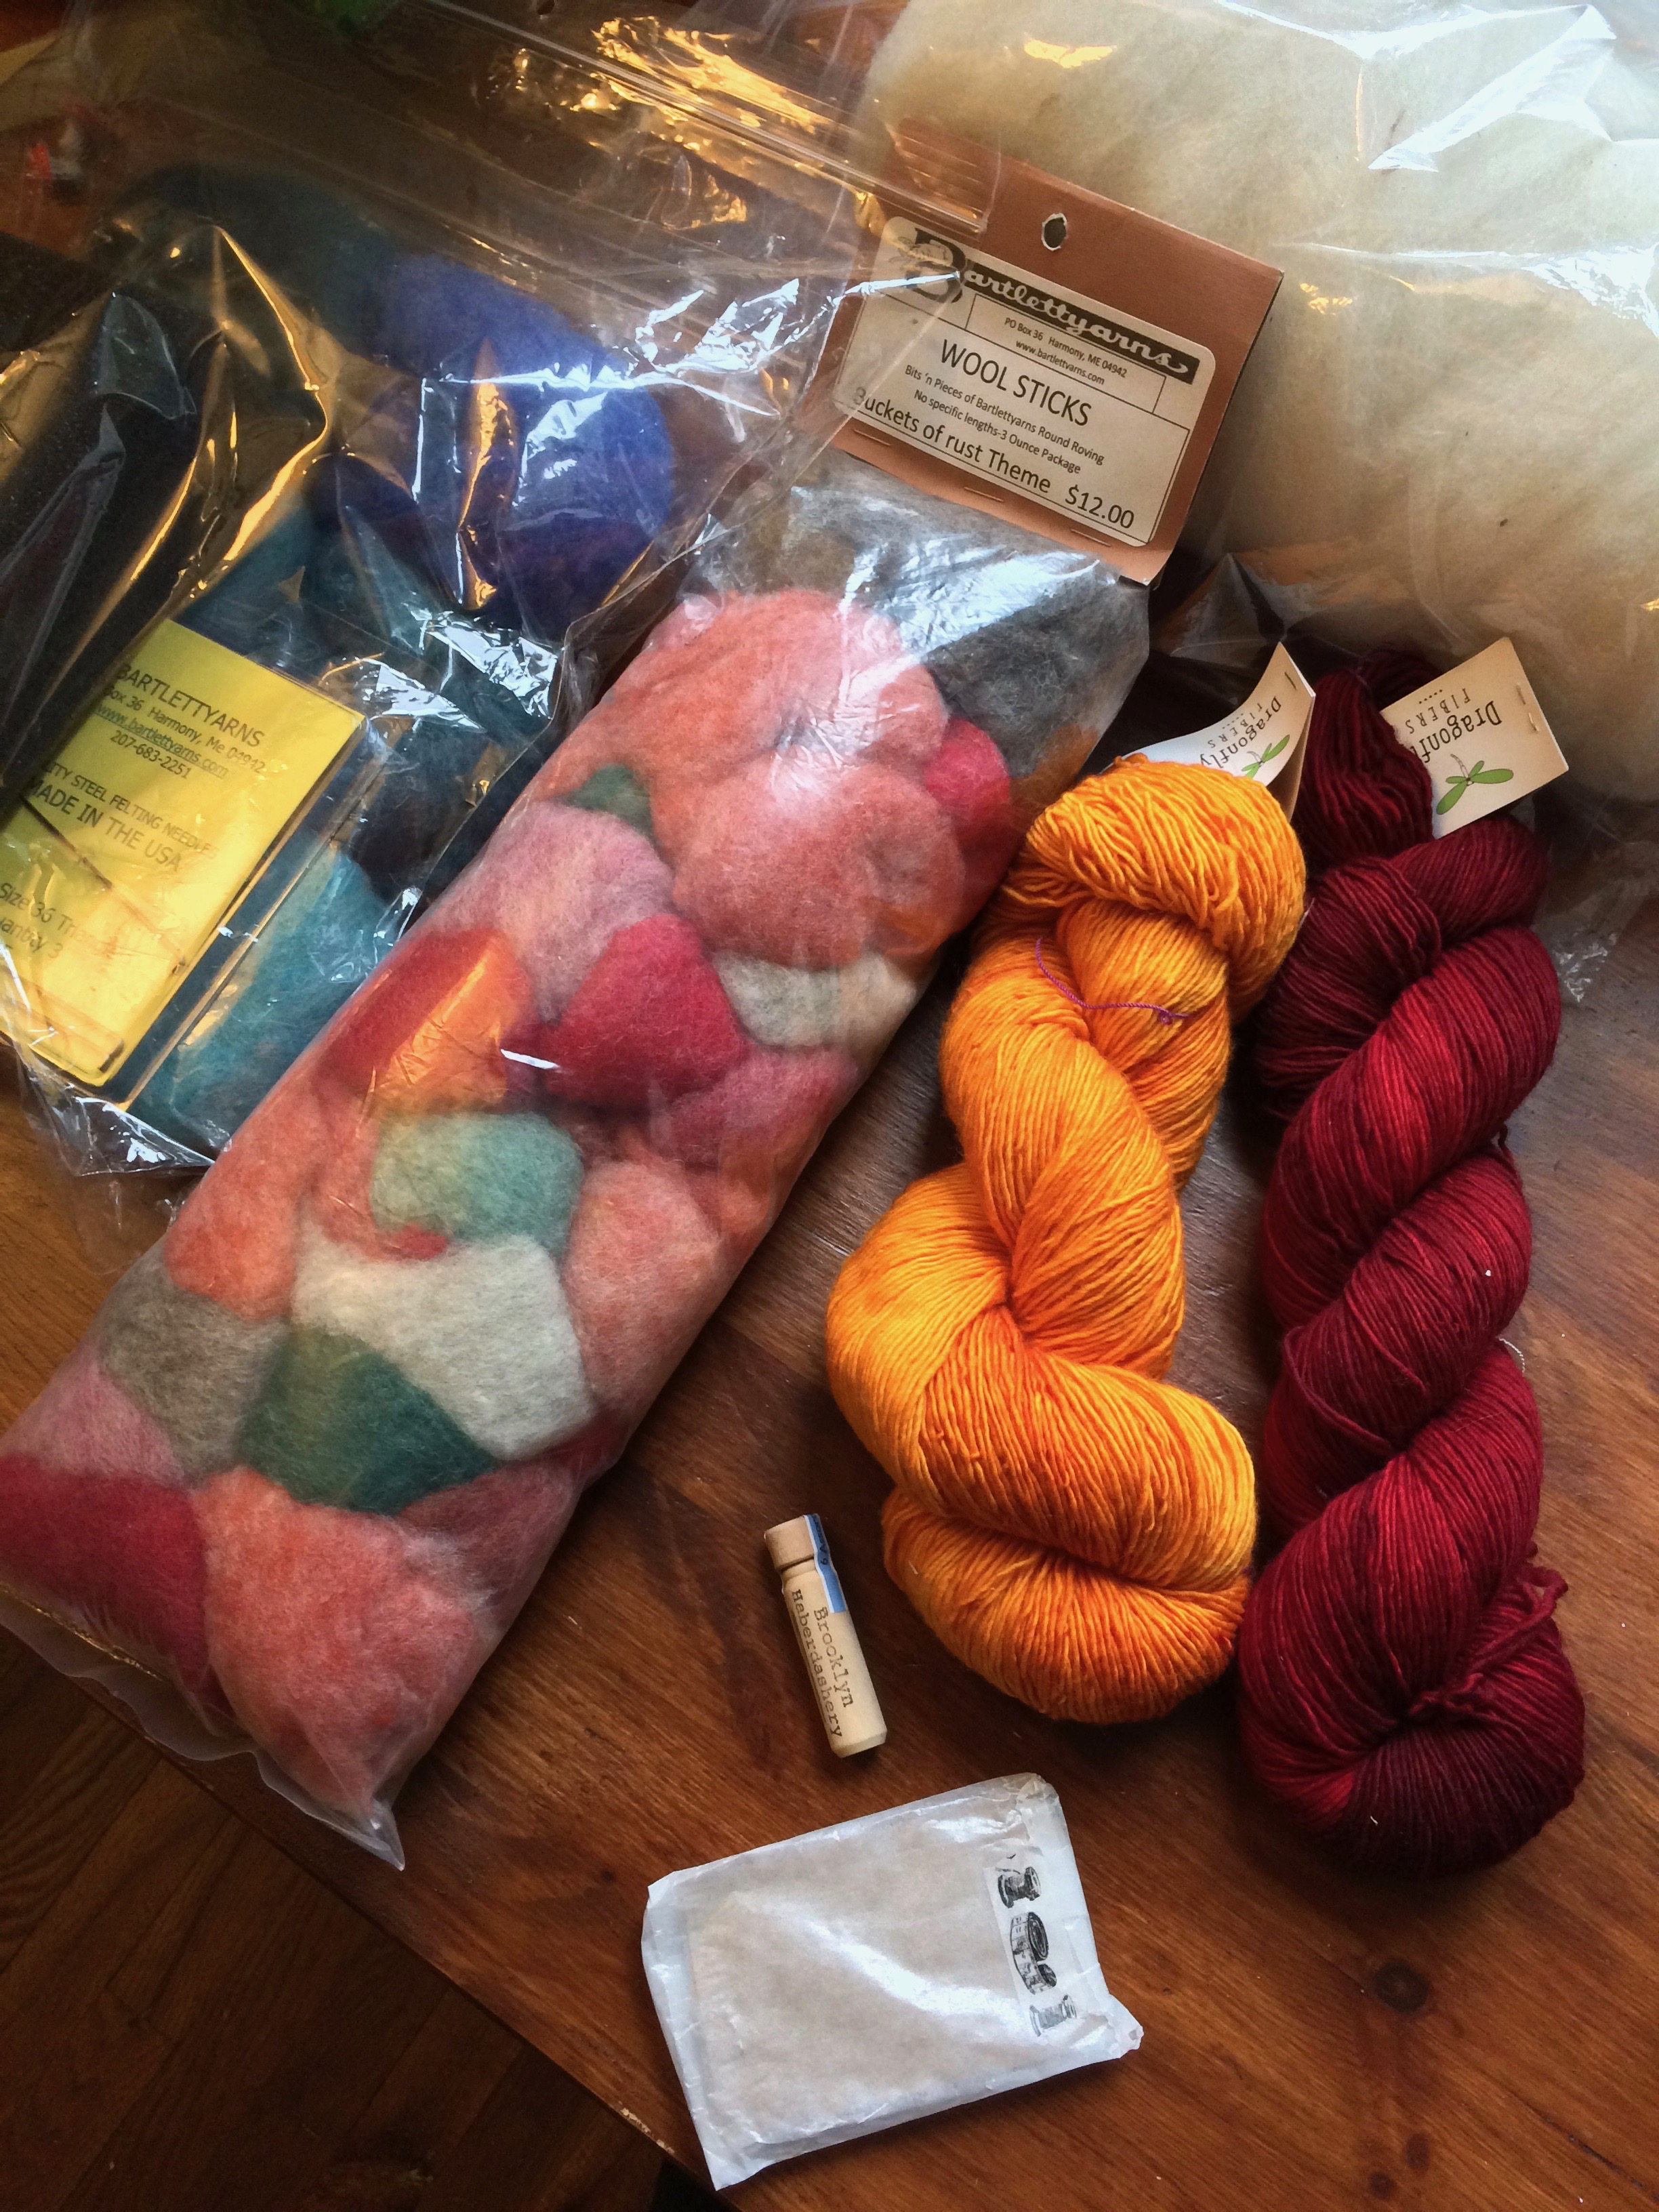 the obligatory haul photo...yup, i'm a sucker for roving.